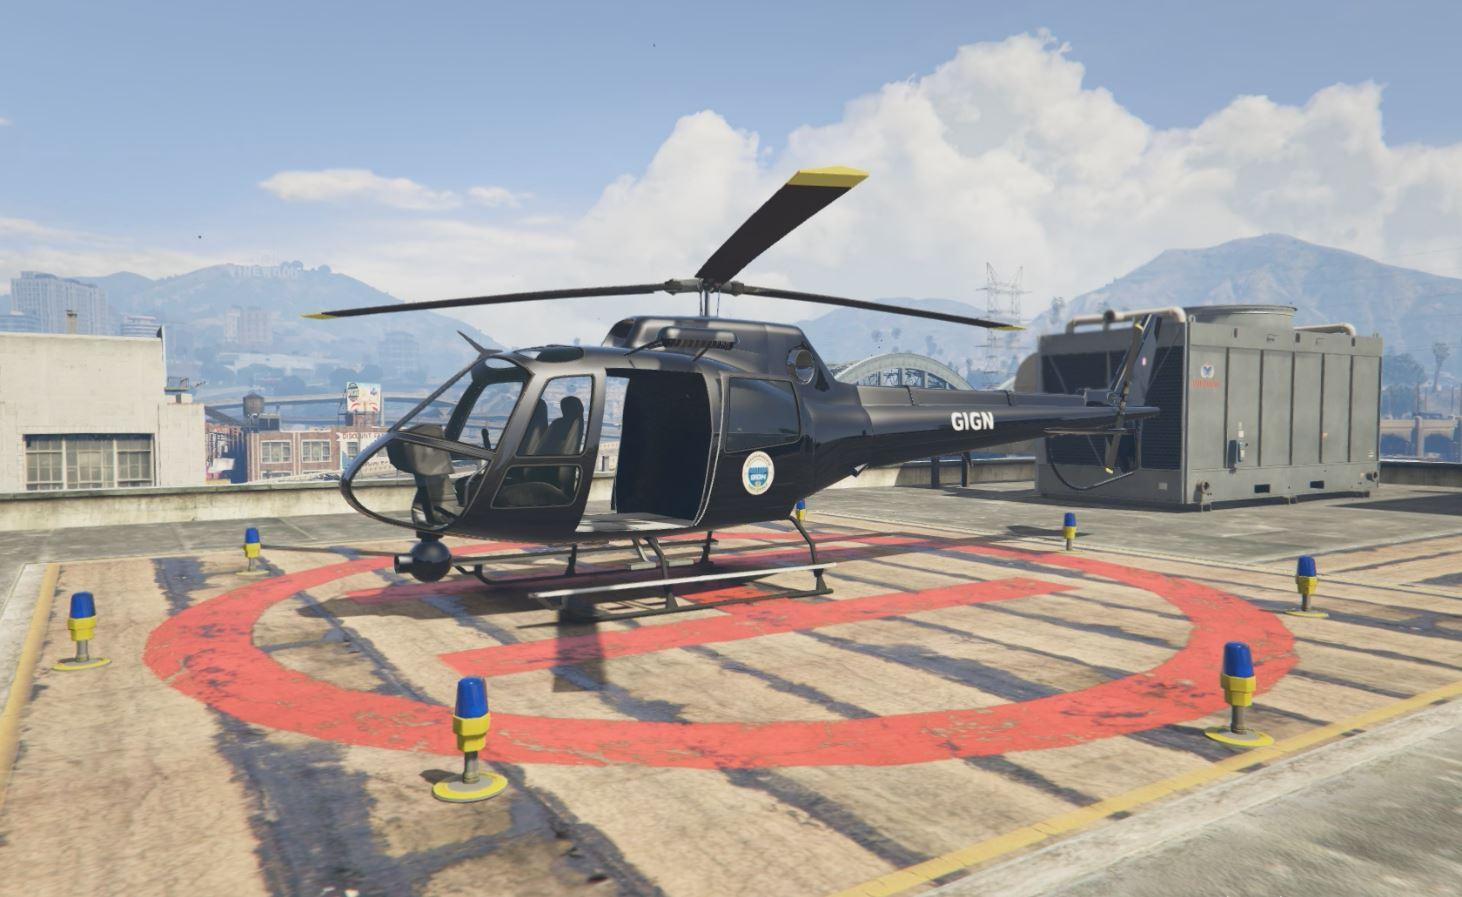 Elicottero Gta 5 : French gendarmerie hélicoptère gign gta mods